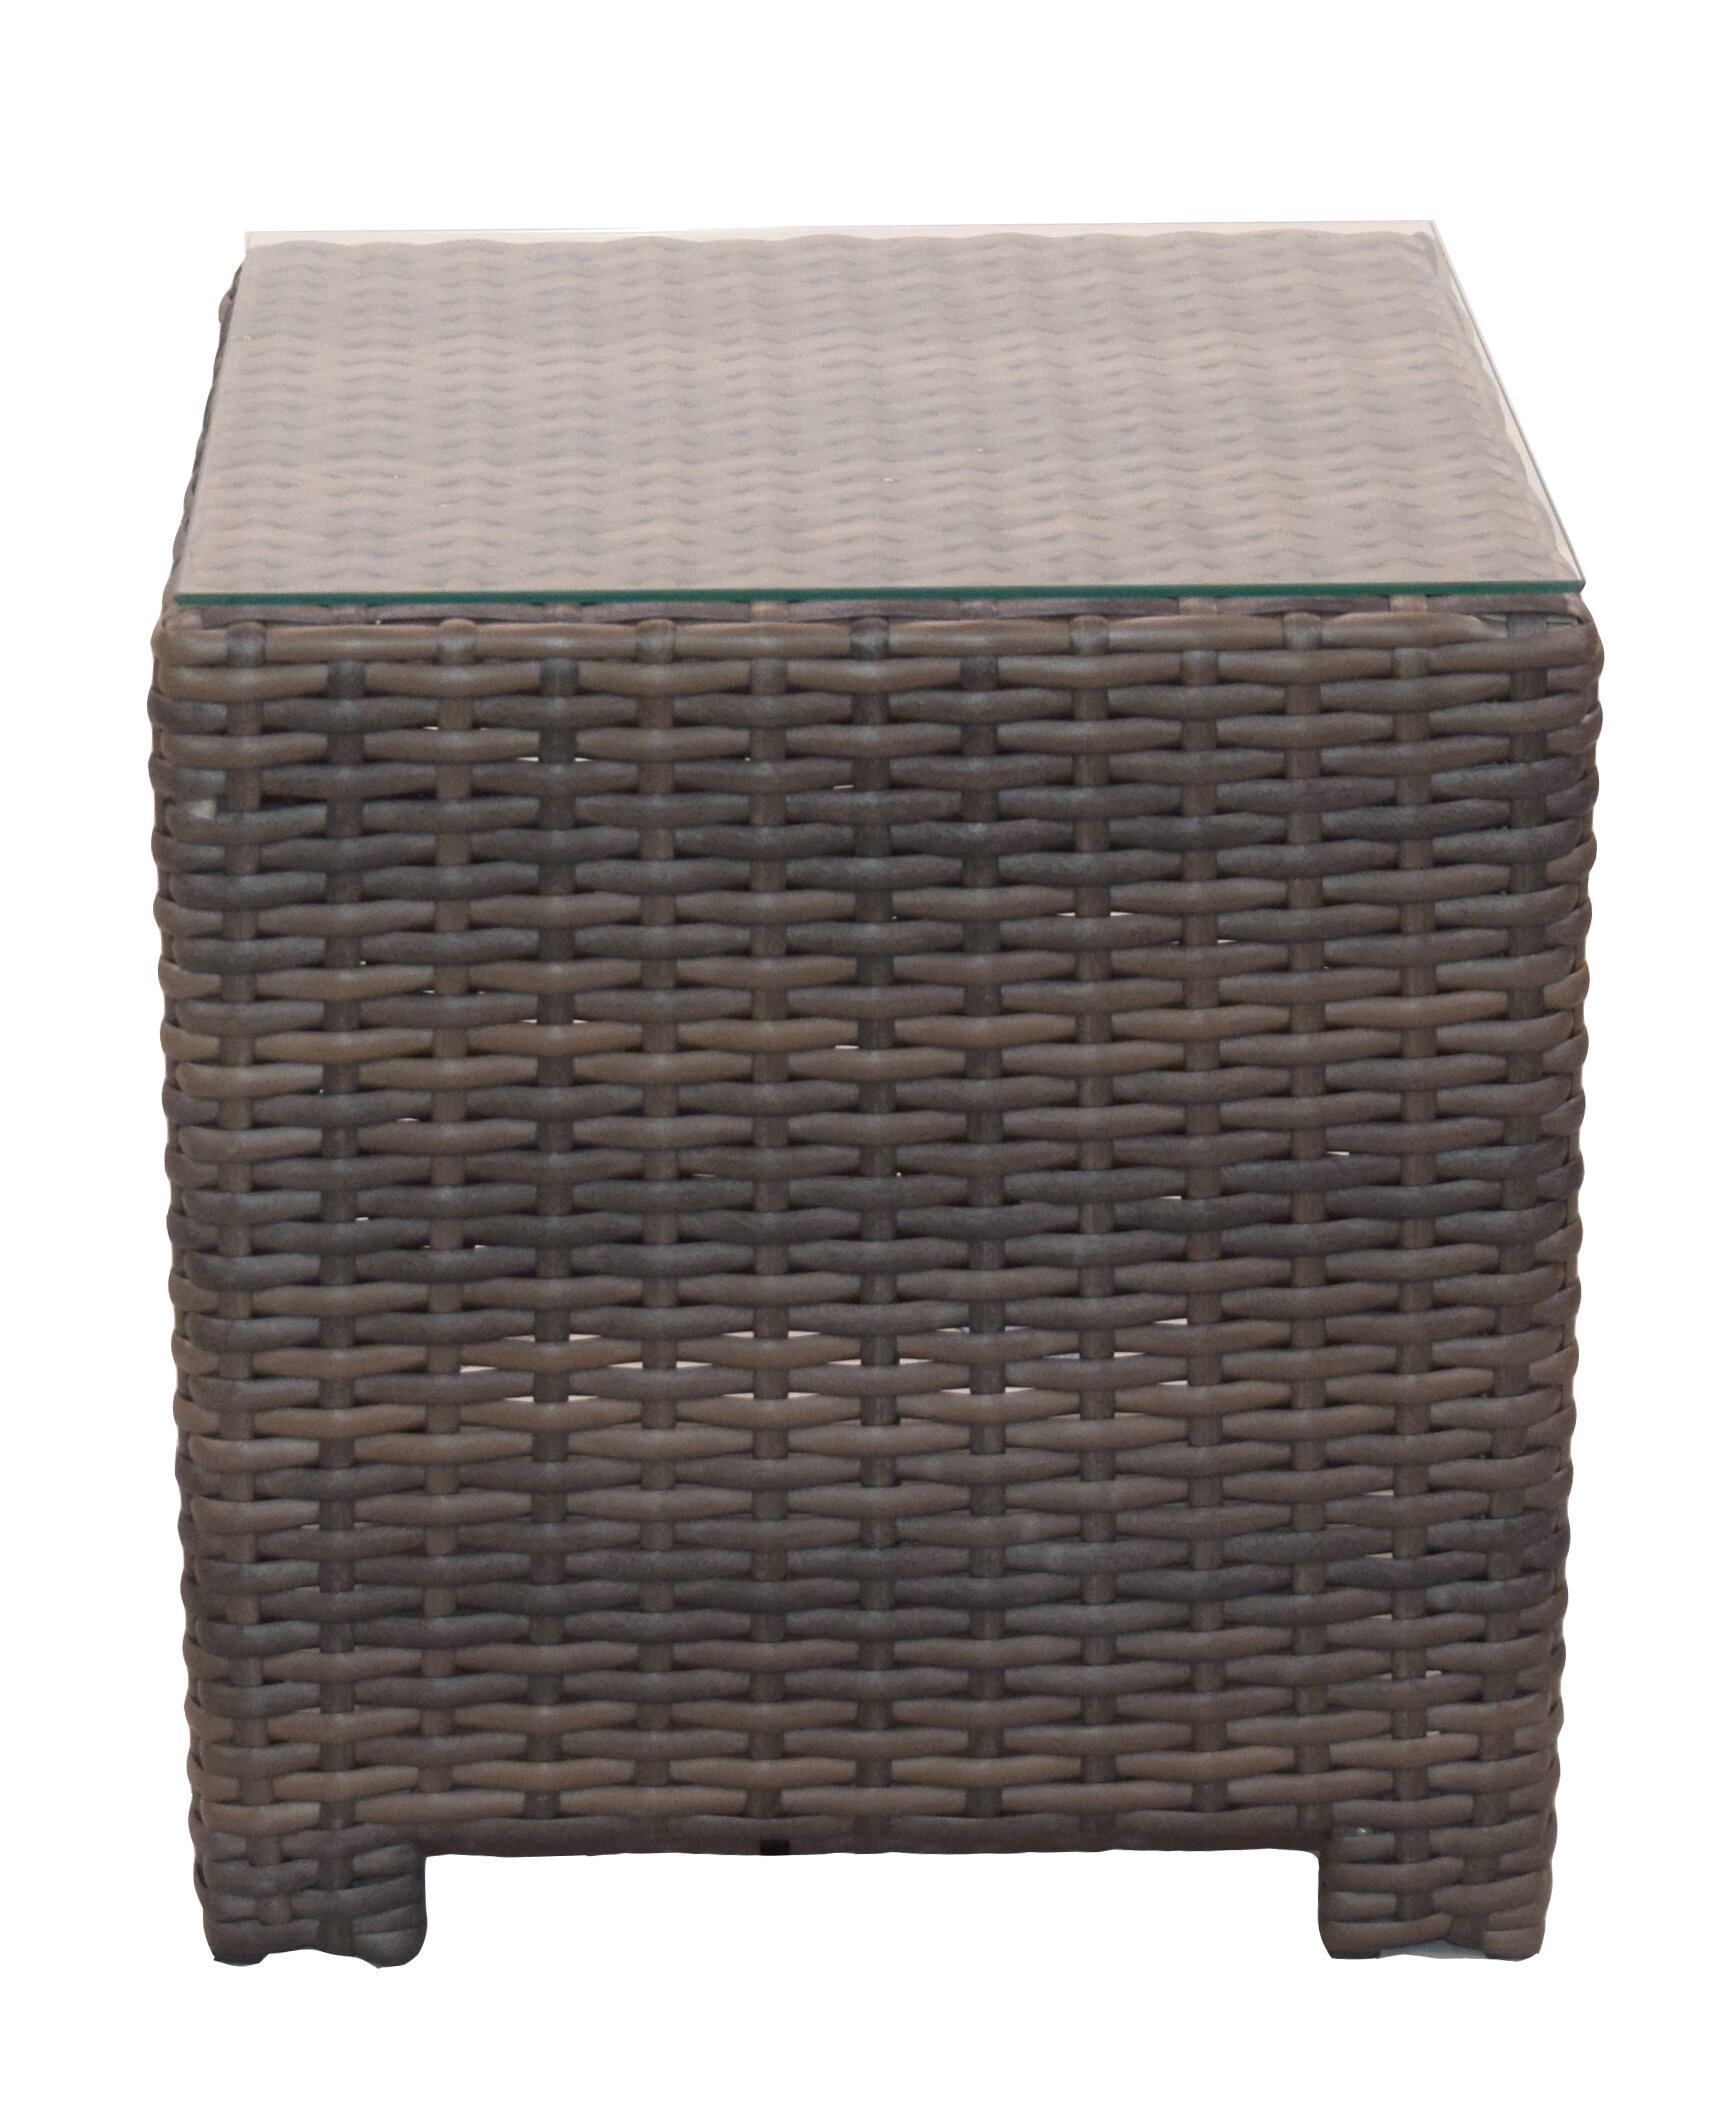 Highland Dunes Cribbs Wicker Rattan Side Table Wayfair